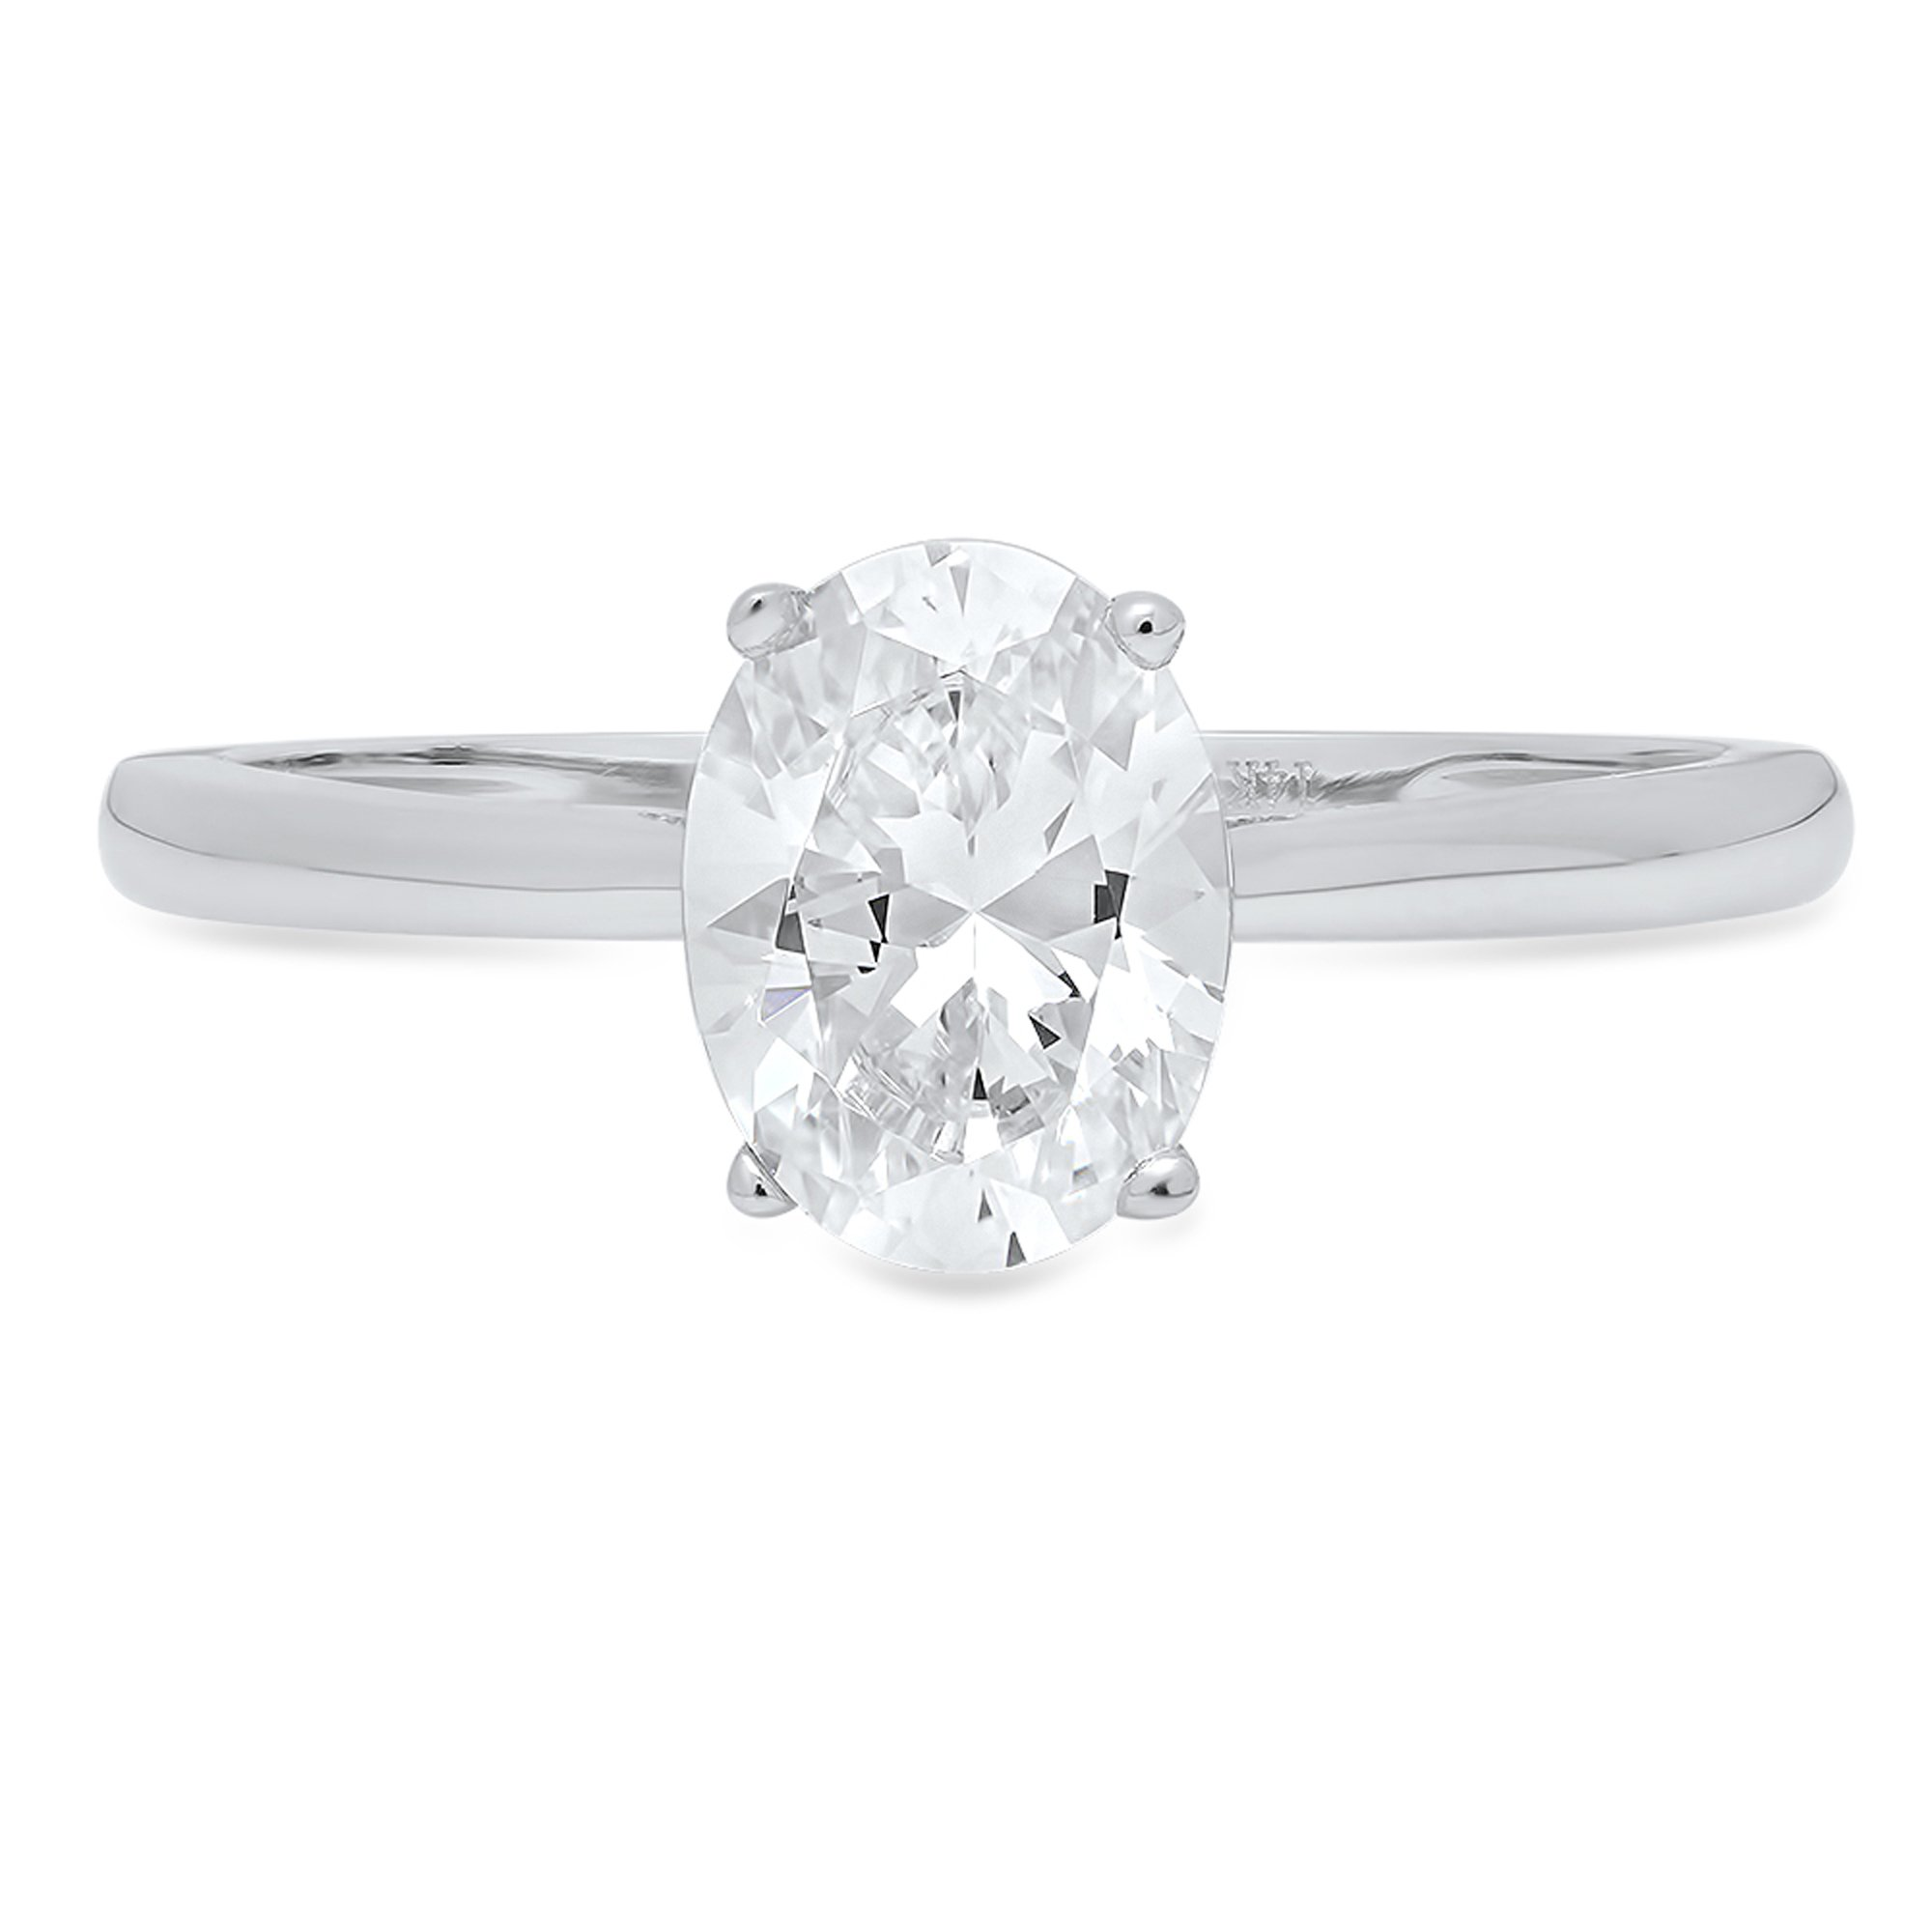 Clara Pucci Brilliant Oval Cut Solitaire Engagement Wedding Promise Bridal Ring in Solid 14k White Gold, 0.85CT, Size 10